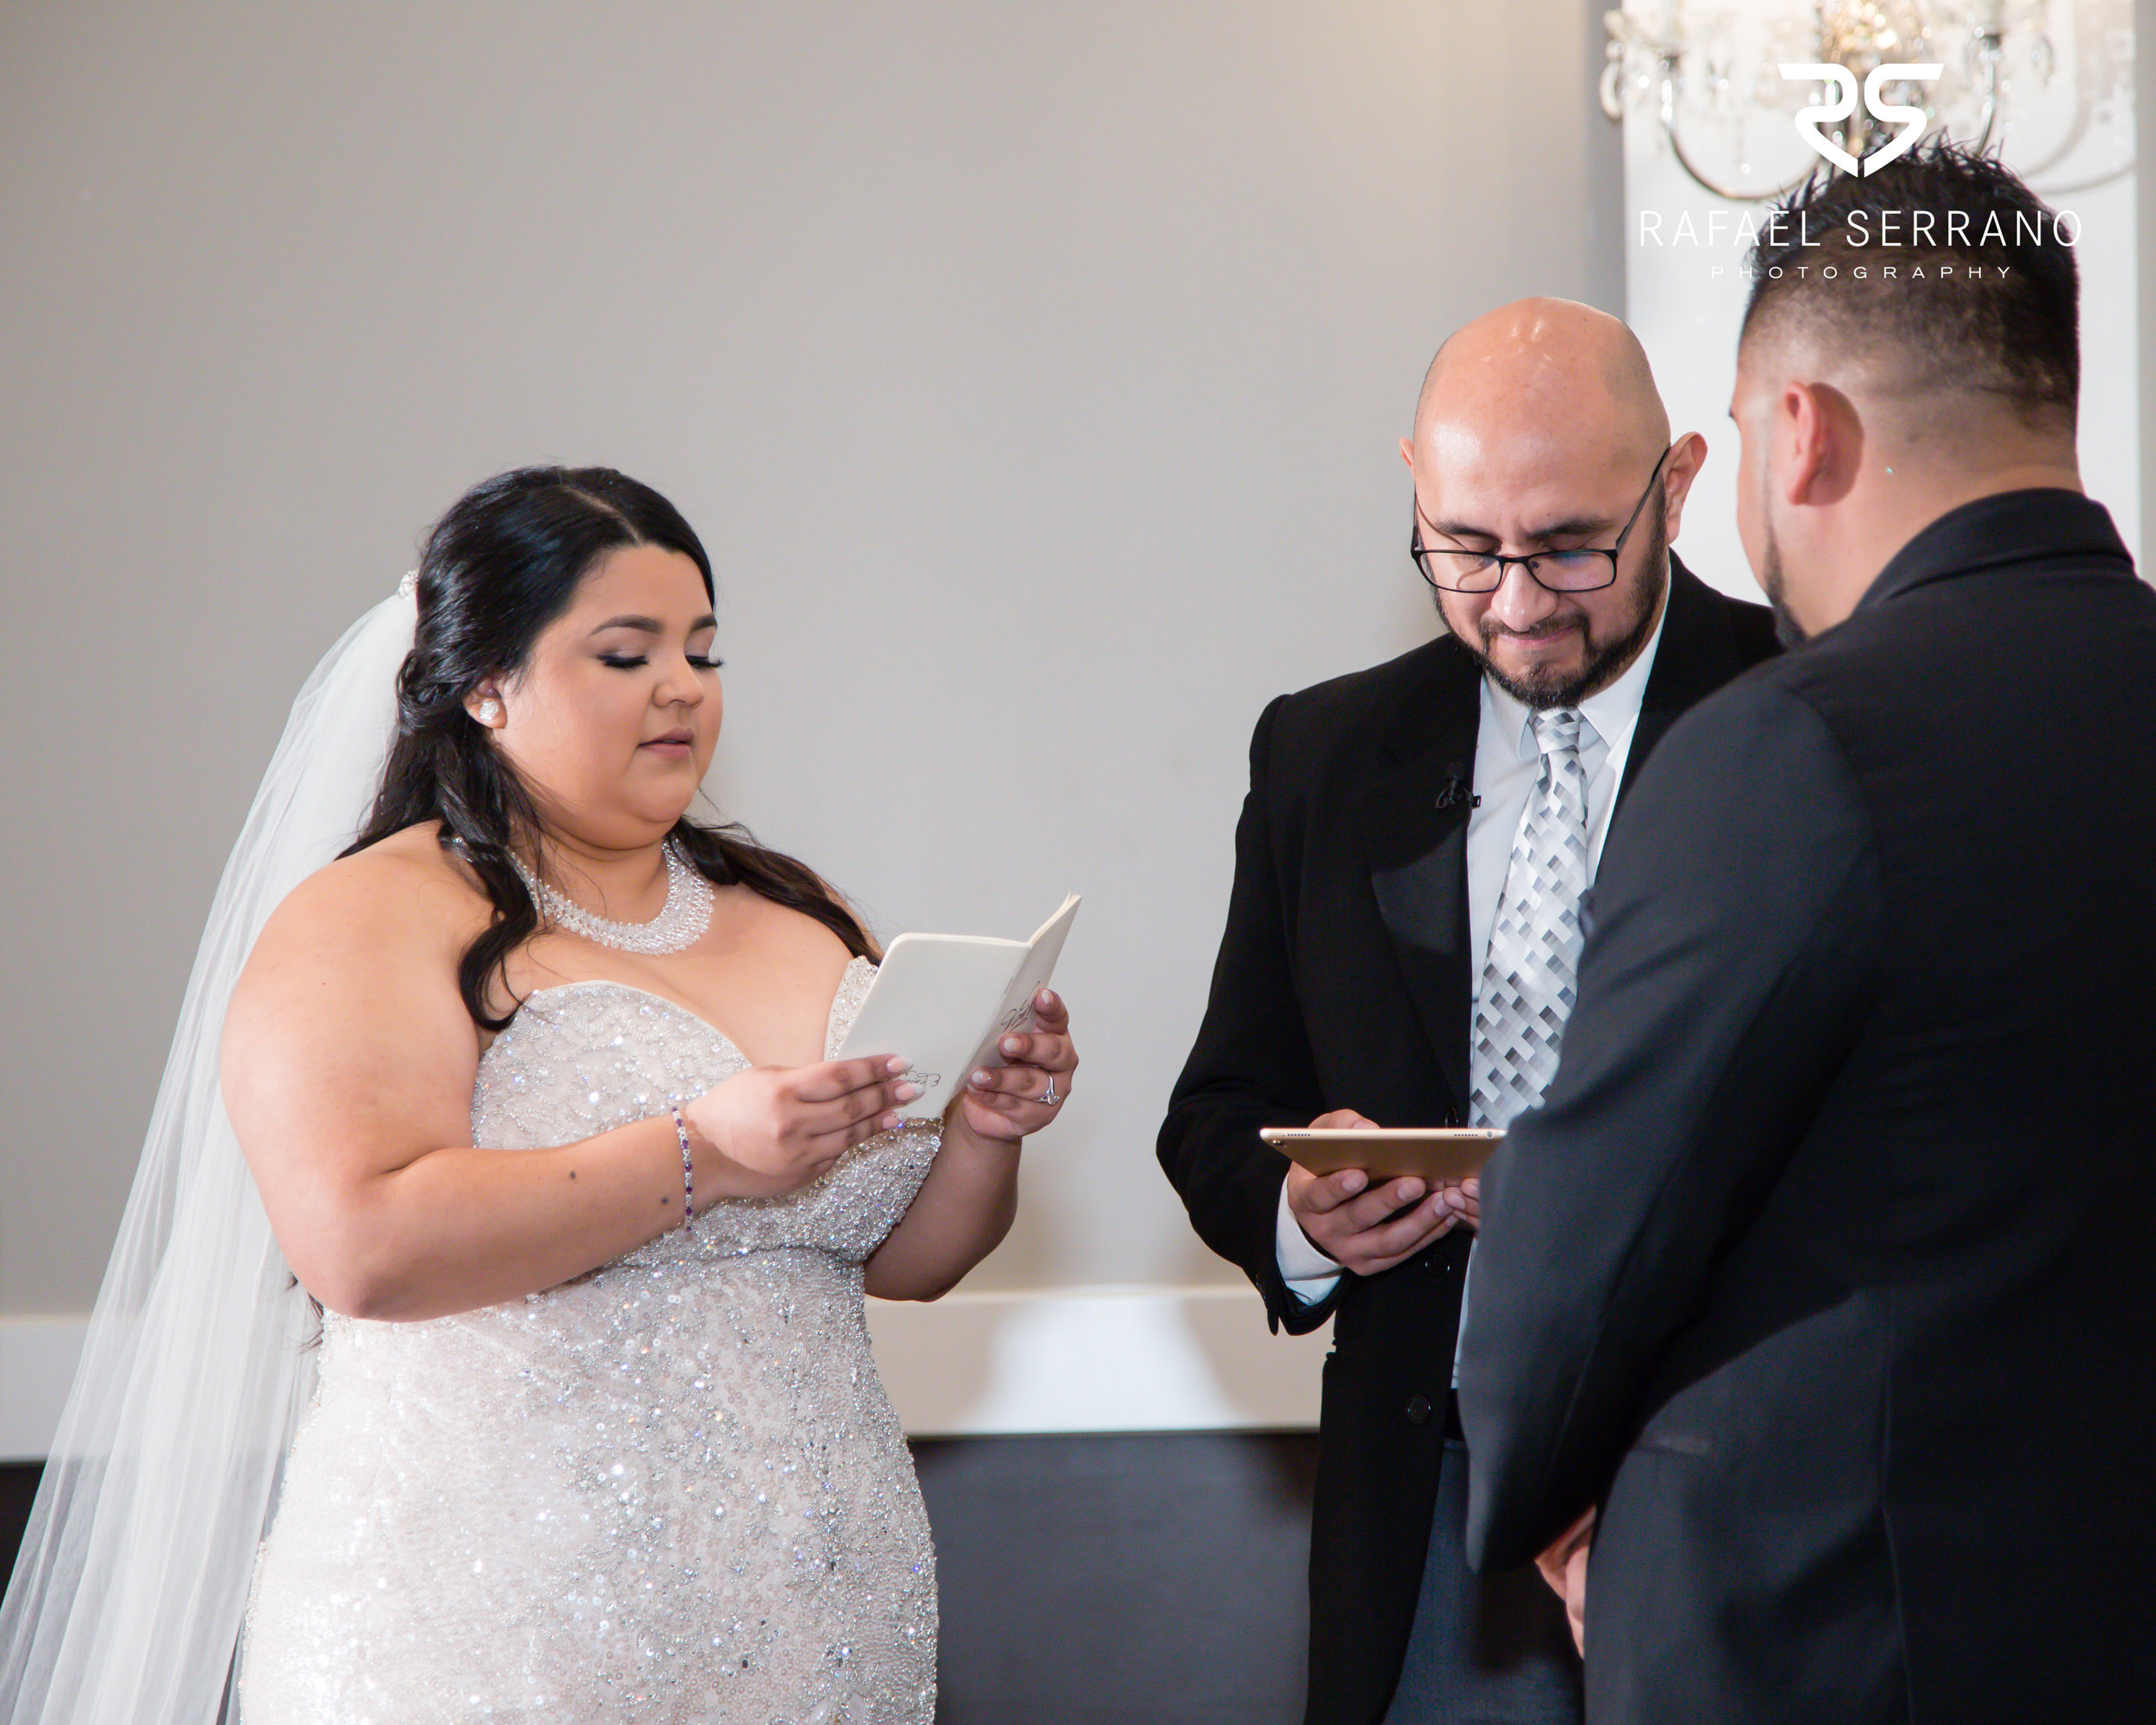 DalllasWeddingPhotography013.jpg